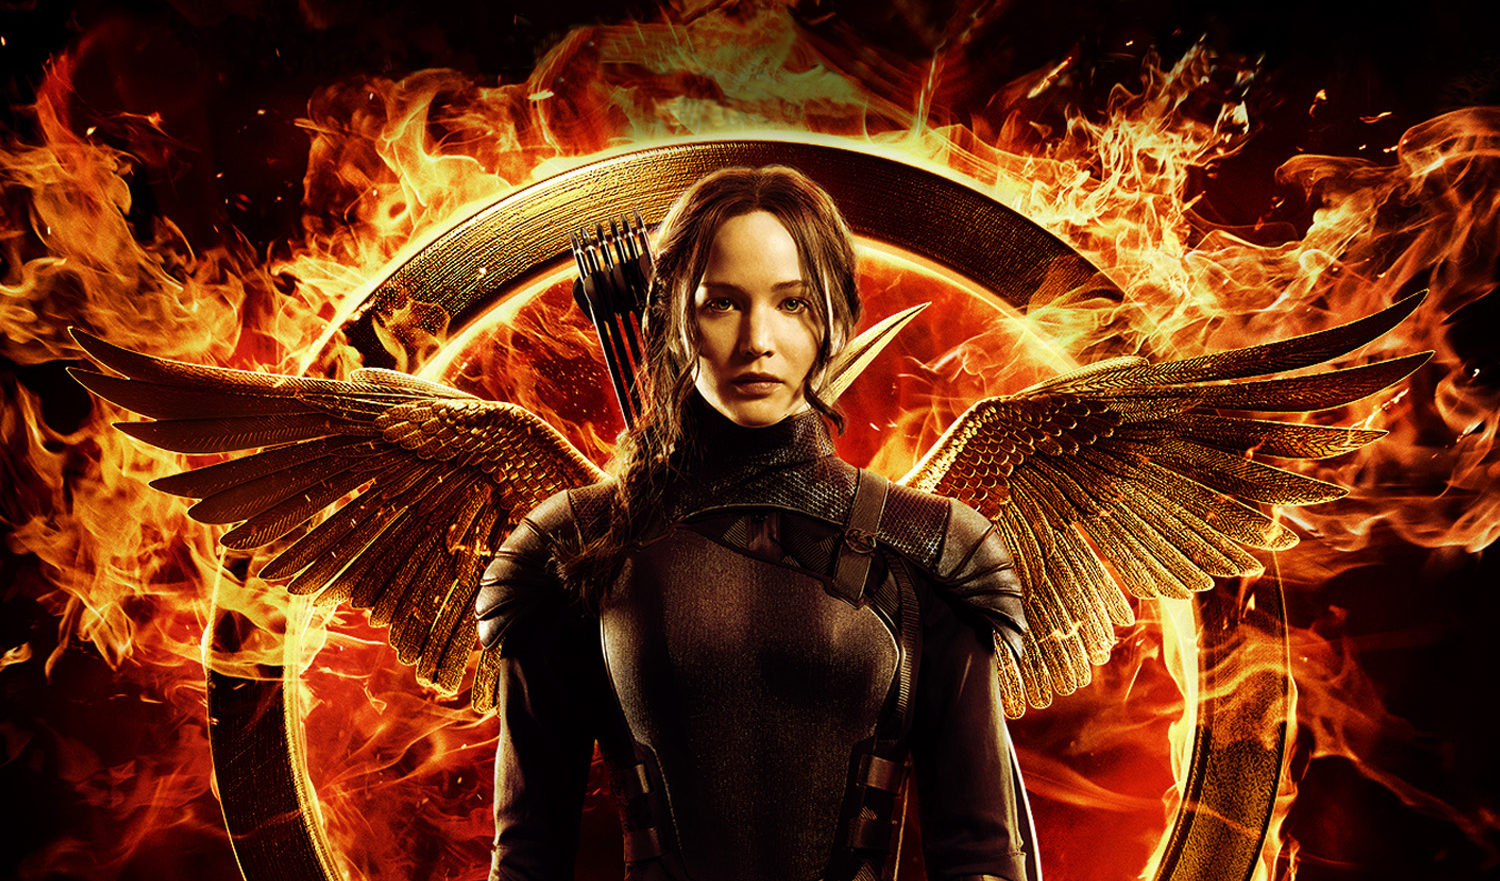 Katniss Everdeen was played by Jennifer Lawrence in The Hunger Games.